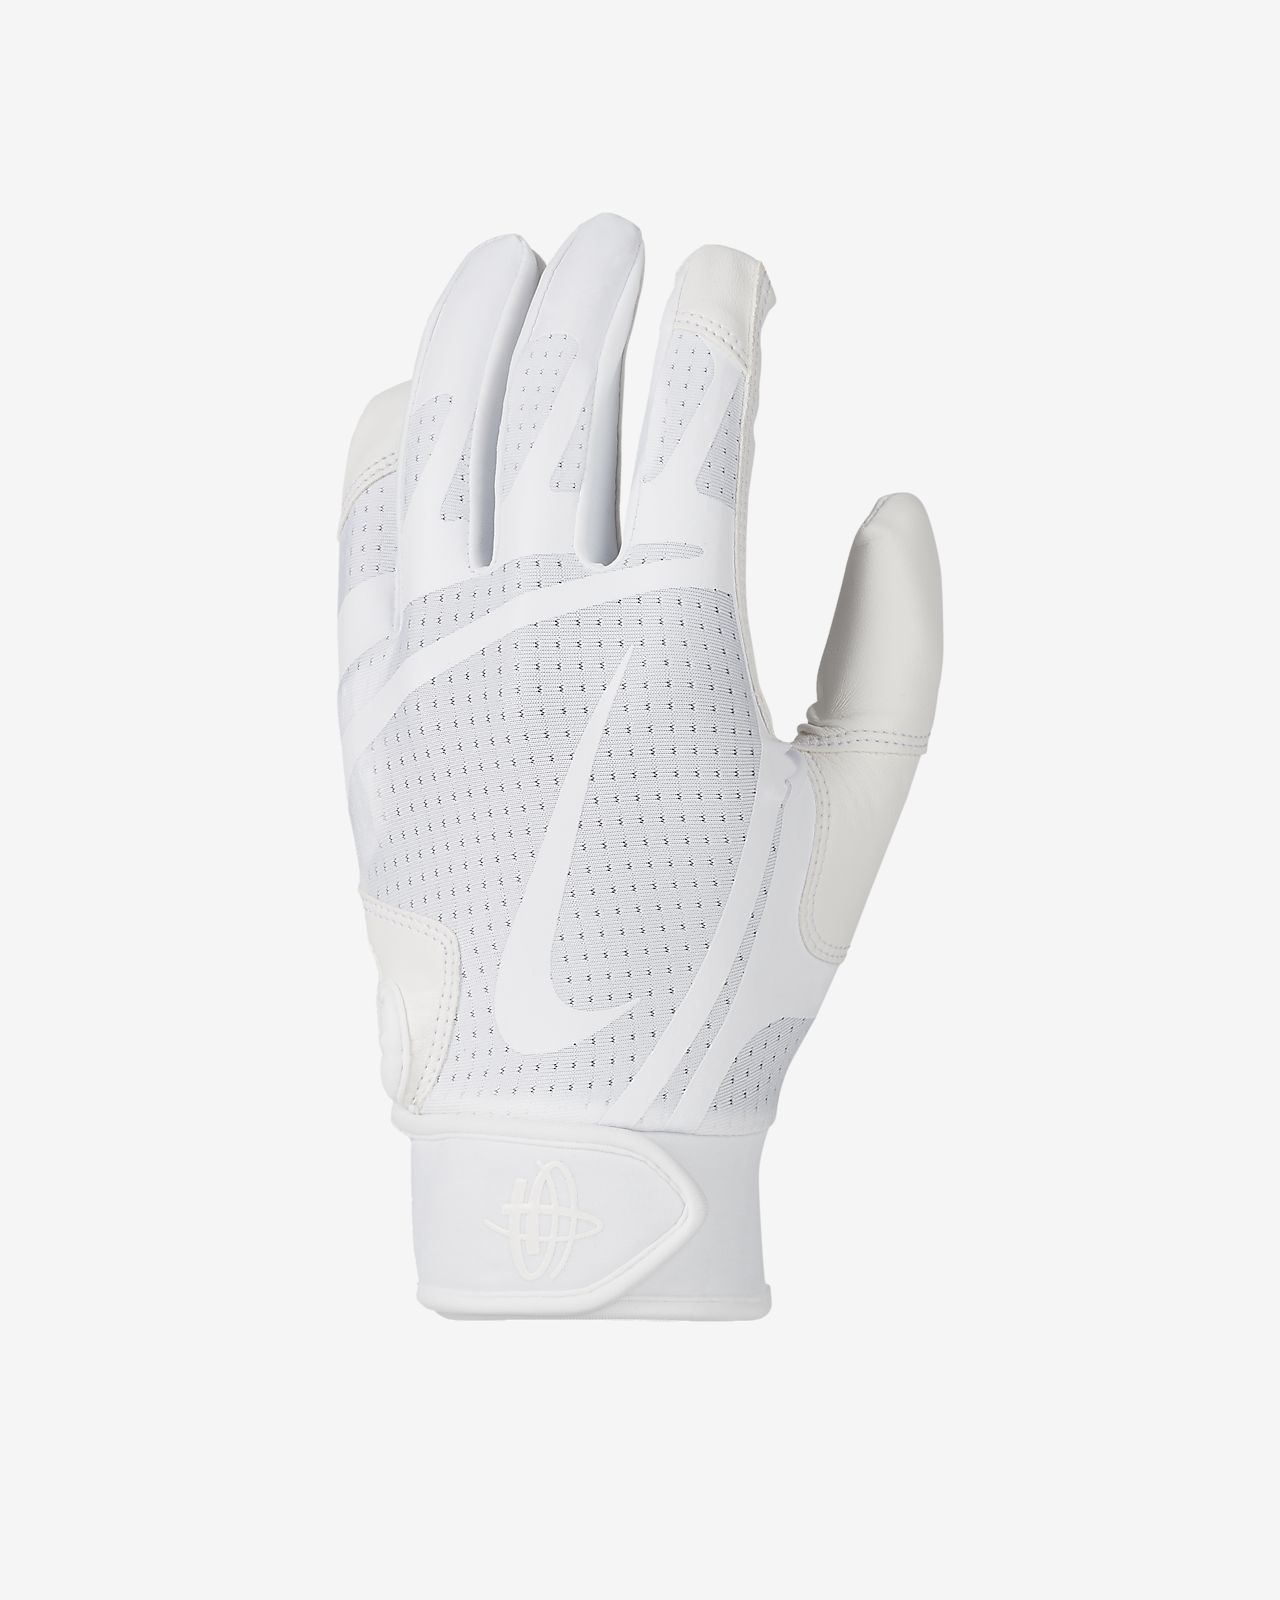 a1fad645ed3ea Nike Huarache Edge Baseball Batting Gloves. Nike.com